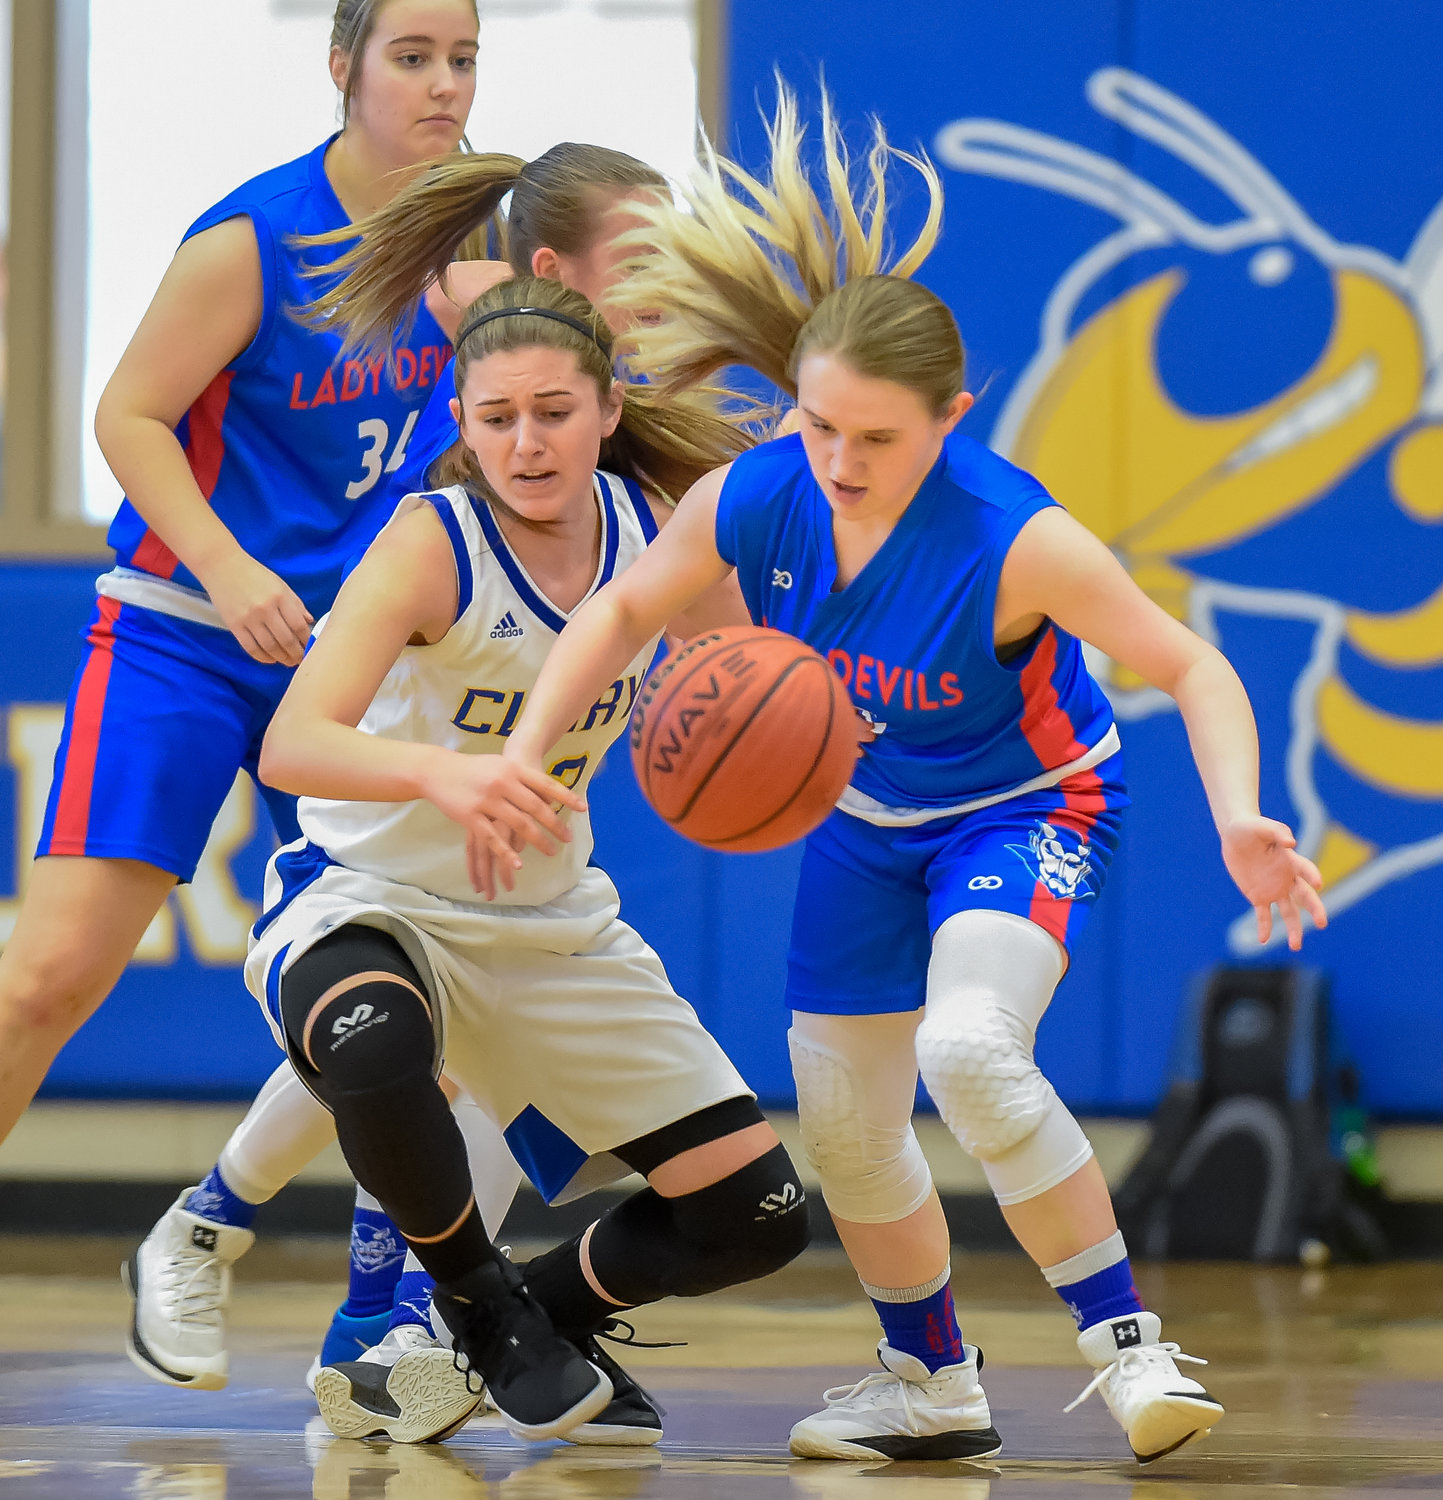 Curry's girls topped Cordova in the area opener on Tuesday. The Jackets play Haleyville for the area tournament title on Thursday starting at 5:30 p.m.